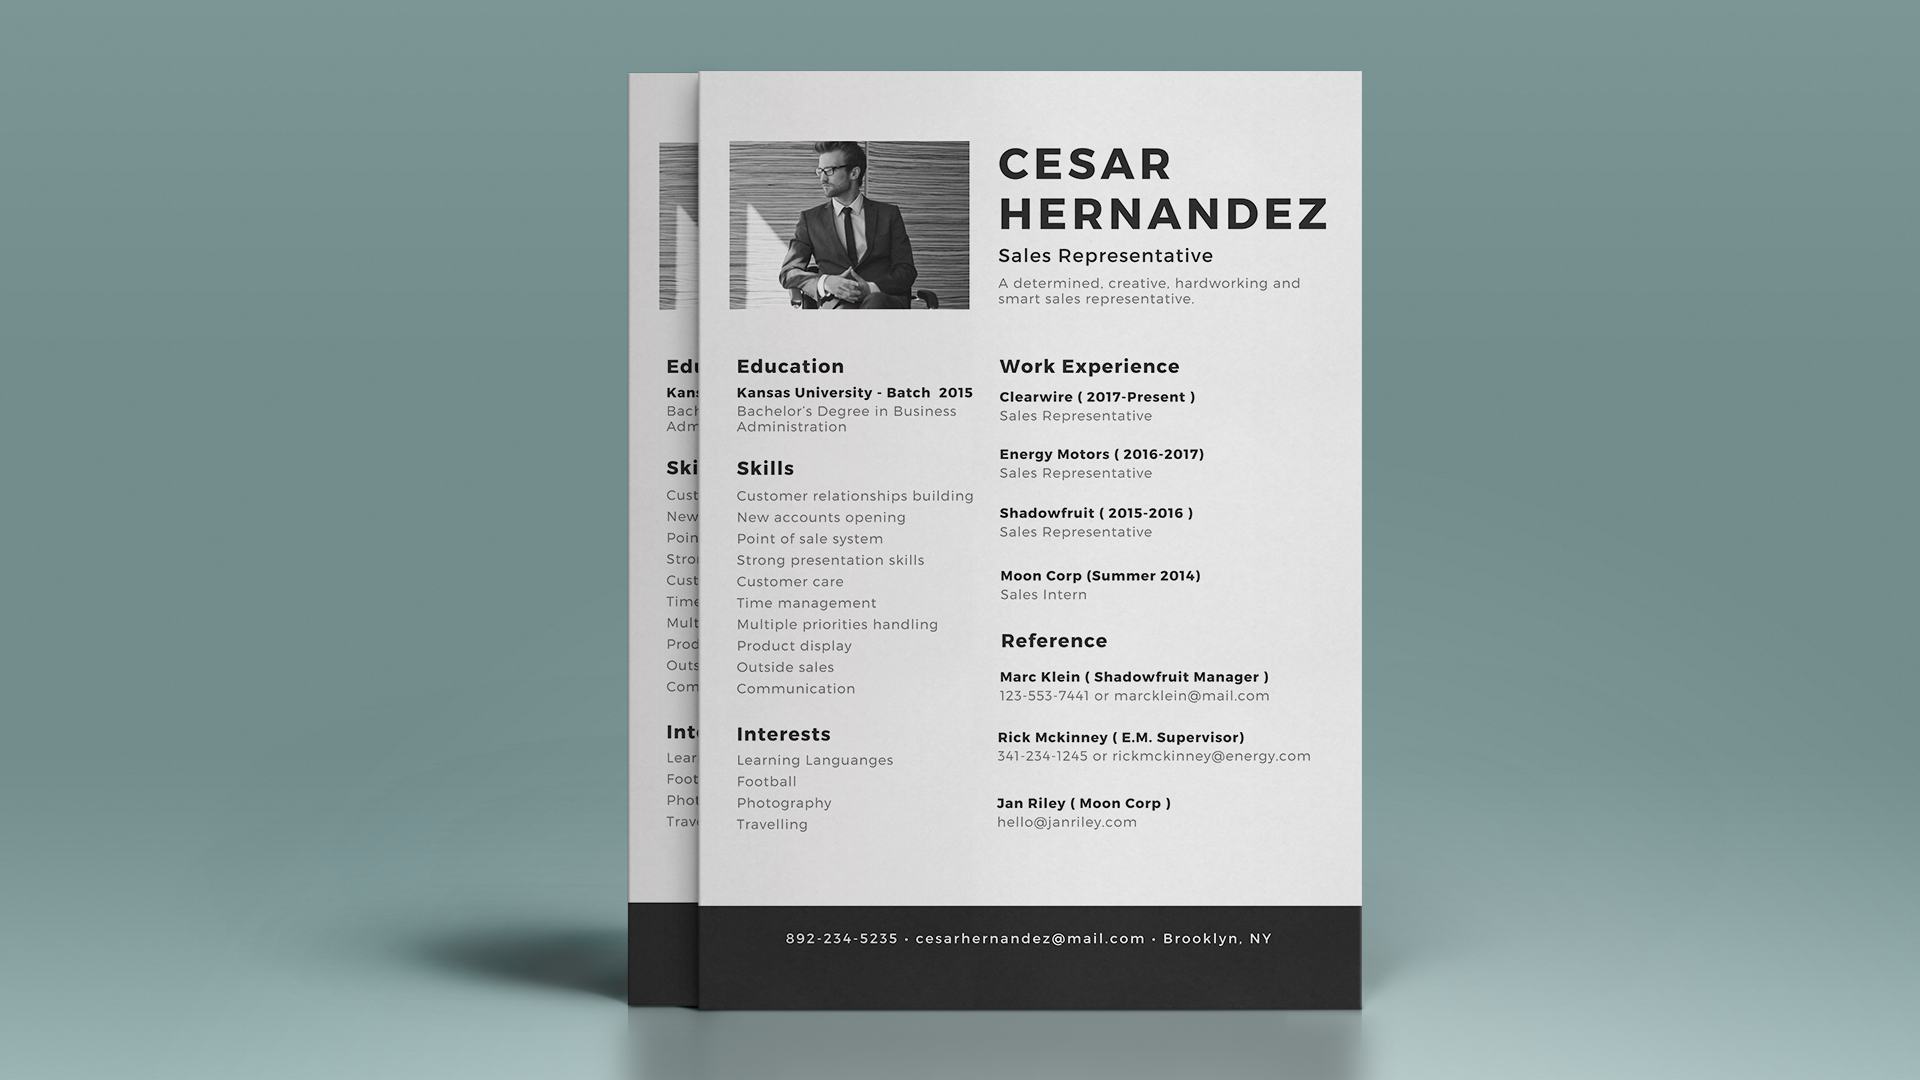 50 inspiring resume designs  and what you can learn from them  u2013 learn